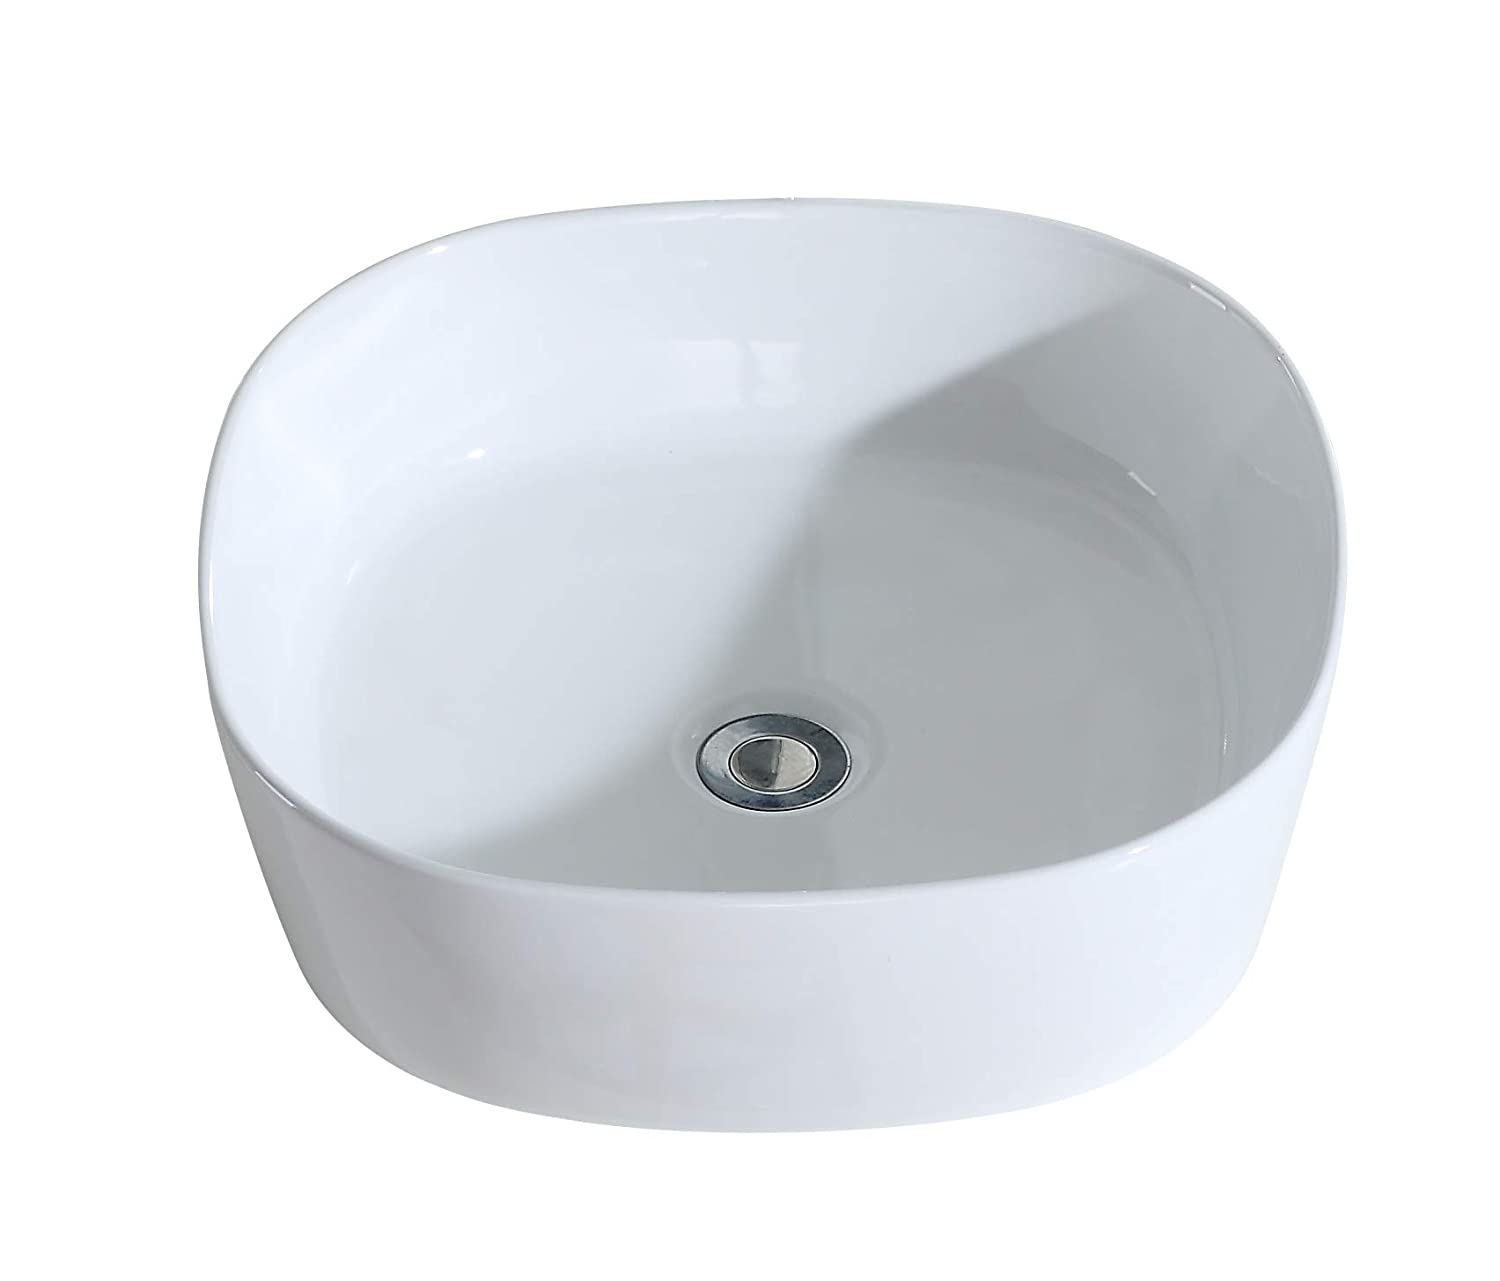 ERIDANUS Wash Basin Sink, [Series Julianne], Ceramic Vessel Sink with [Smooth Finish] Countertop Mounted [Easy Installation] for Lavatory Vanity Cabinet, Gloss White